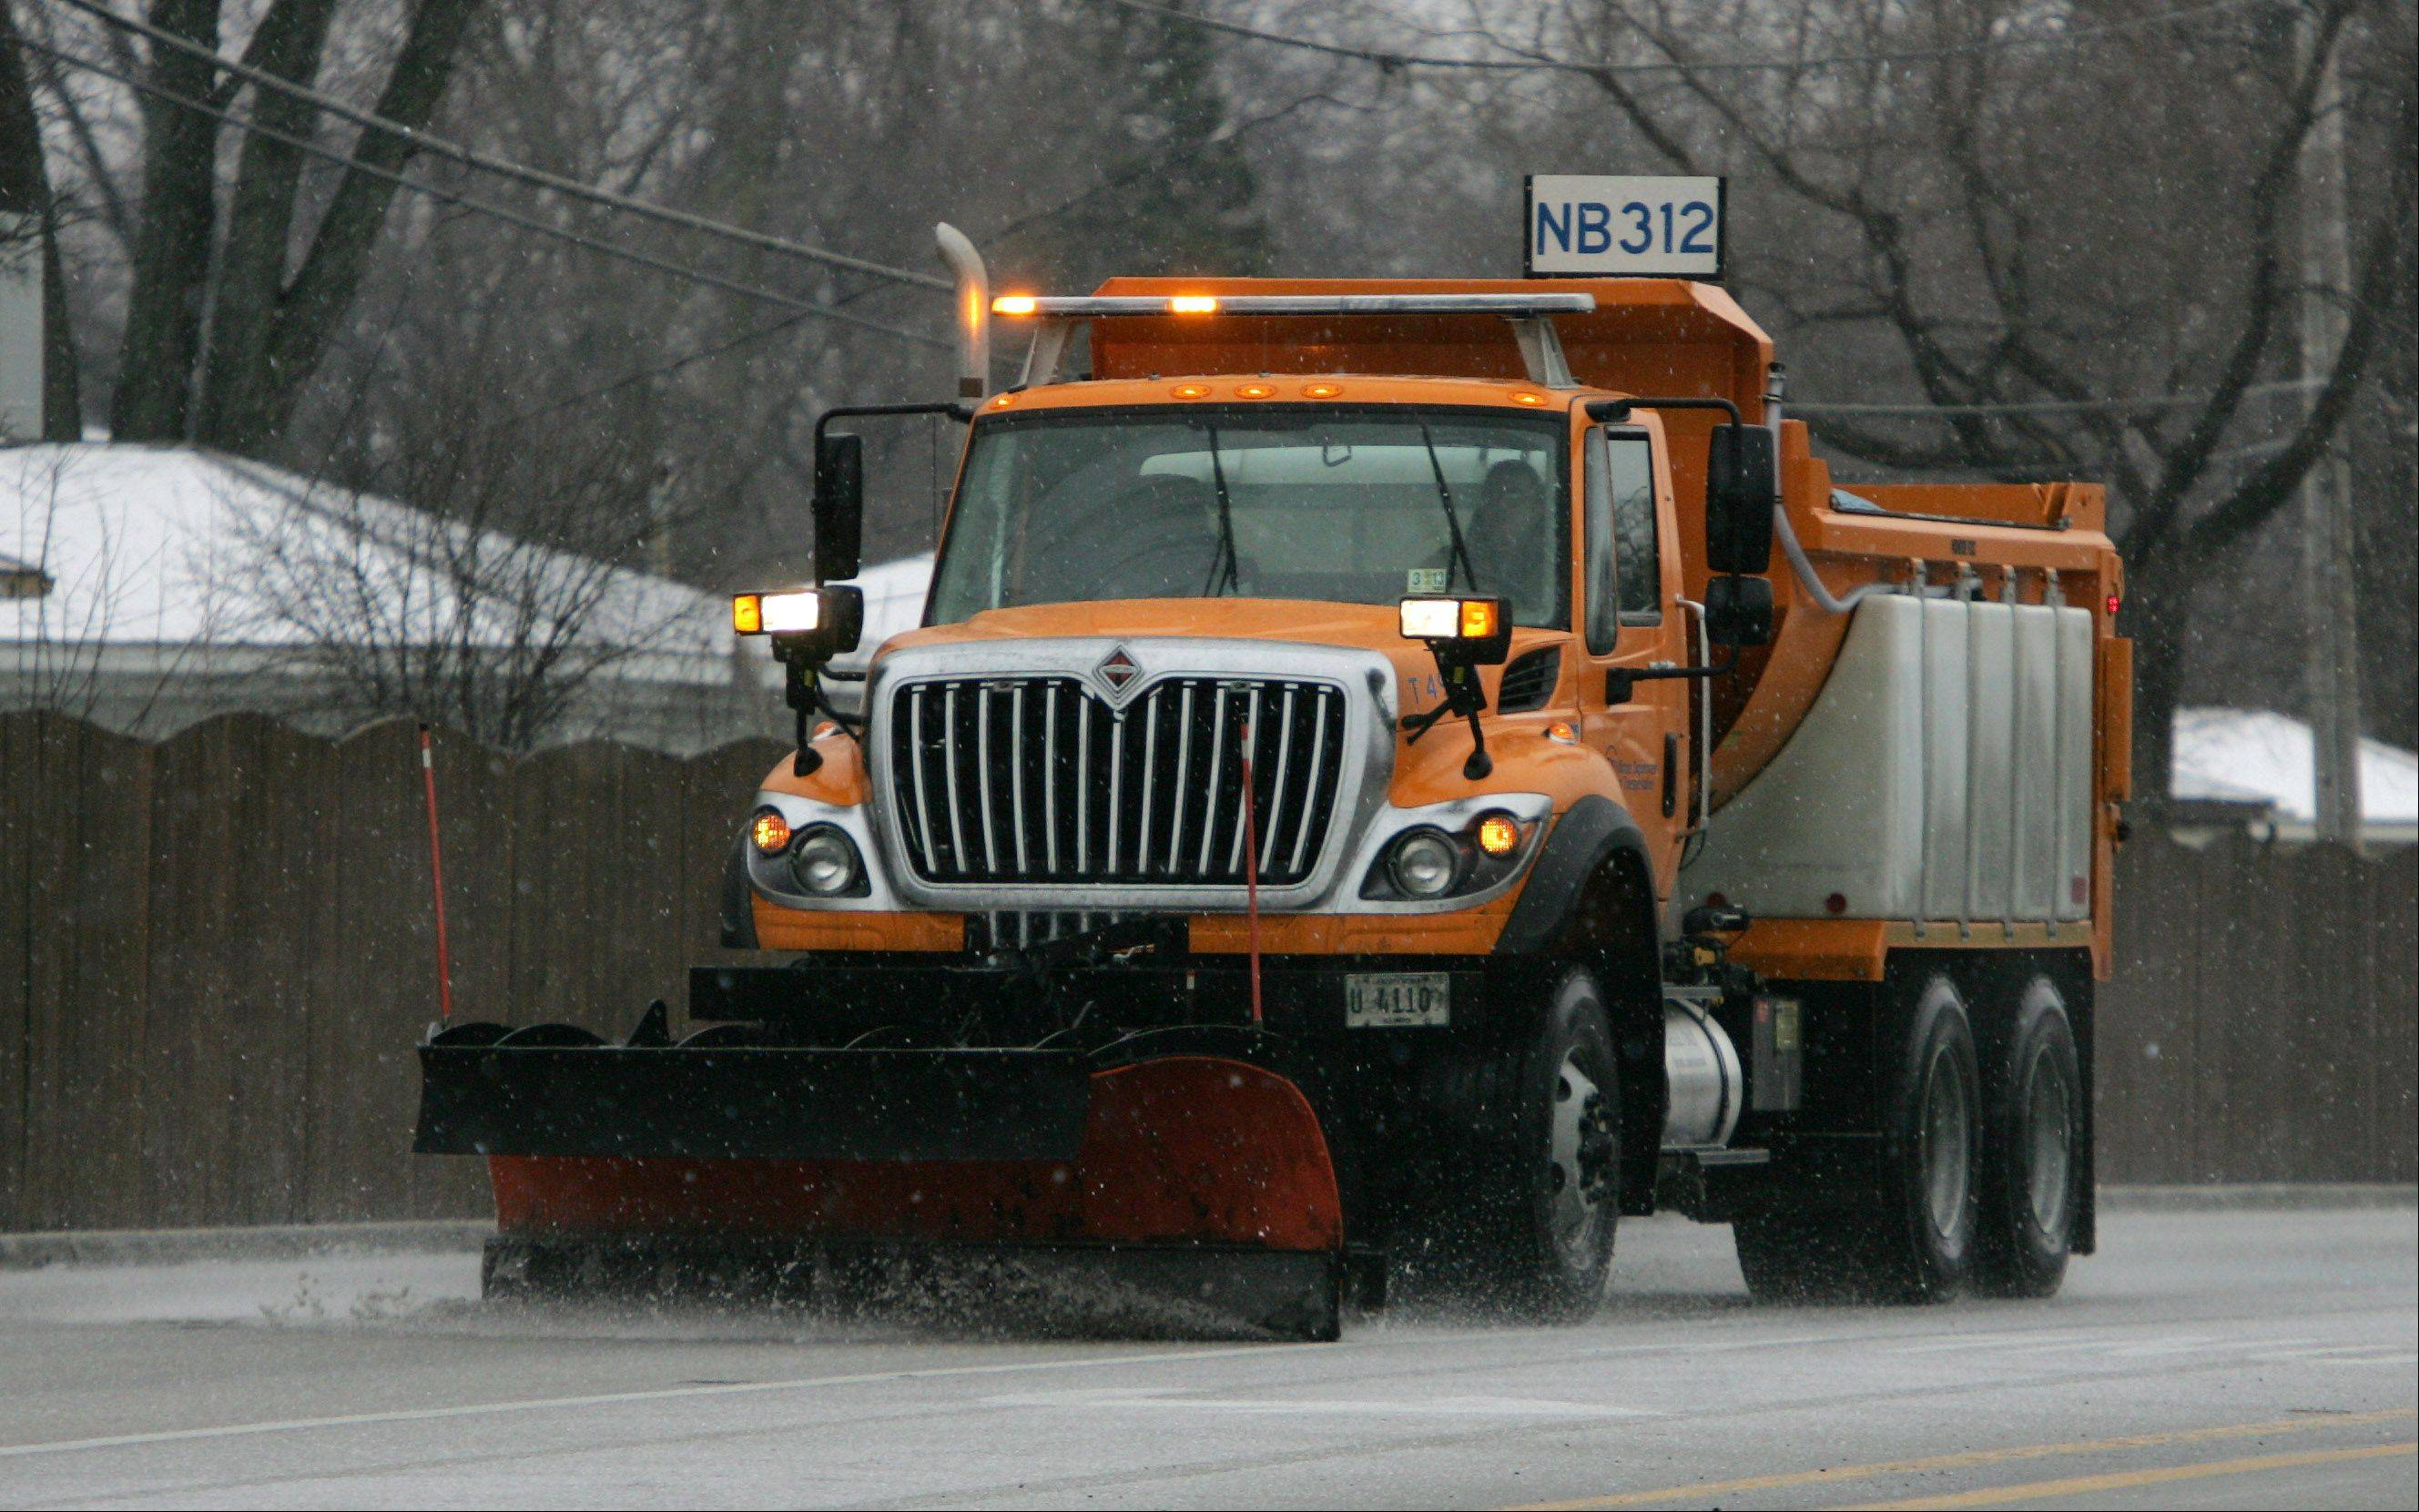 An Illinois Department of Transportation truck salts the roads along Elmhurst Road in Wheeling yesterday as an ice storm hit the area causing difficult driving conditions.